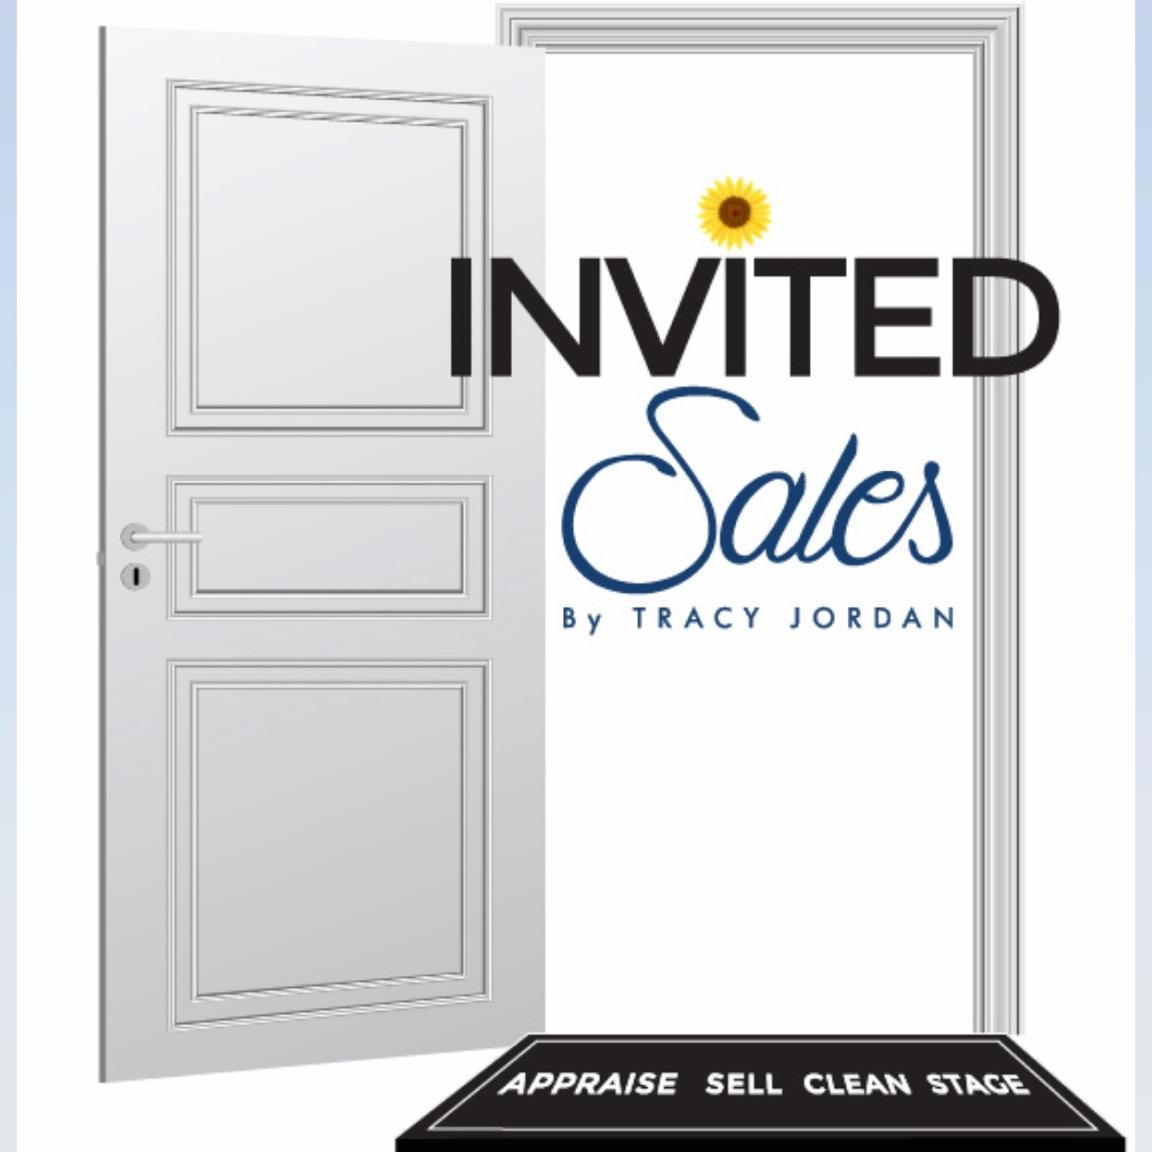 Invited Sales by Tracy Jordan Garden City NY Company